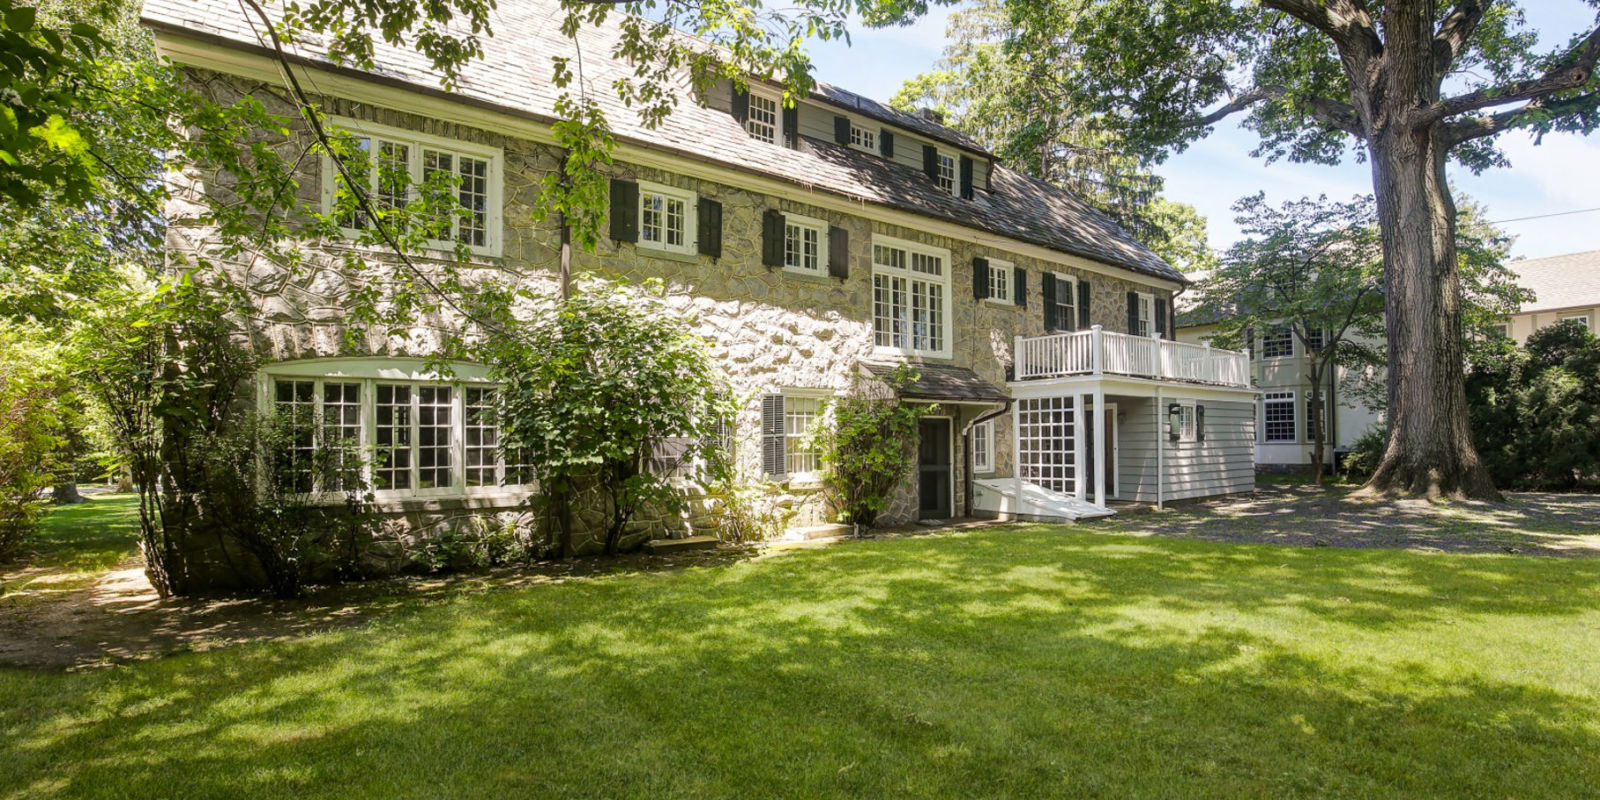 this gorgeous new england saltbox house is ivy league worthy for sale pelham manor home untouched since 1969